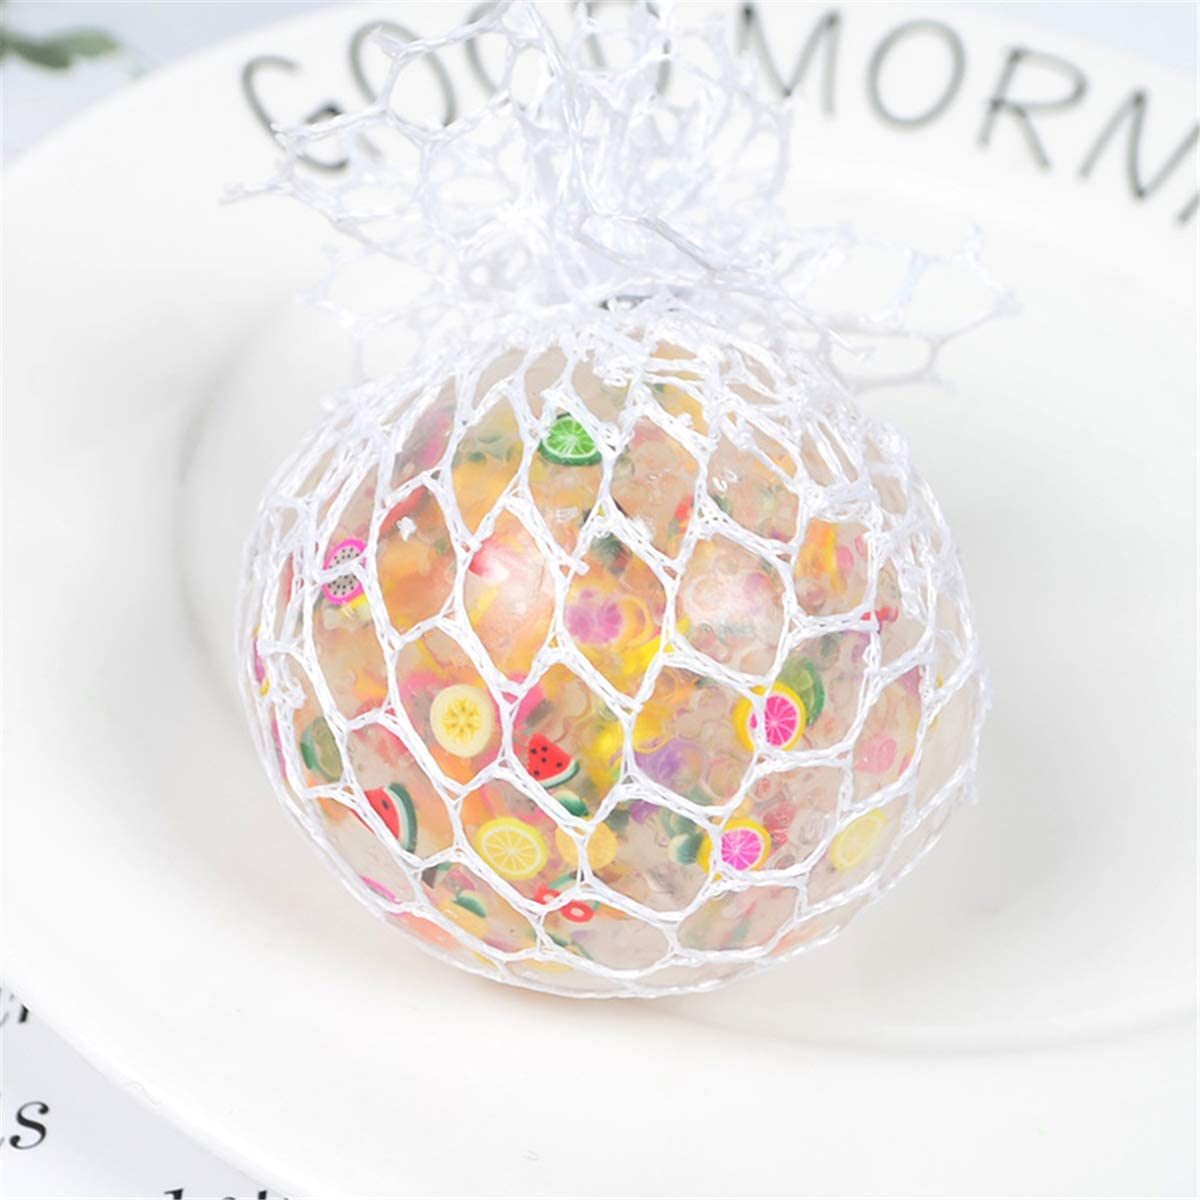 Bounce Ball,yangyang 6cm Funny Fruit Slice Anti-Stress Squishy Ball Grape Squeeze Mood Autism Kids/&Adult Play Vent Toys for Gift